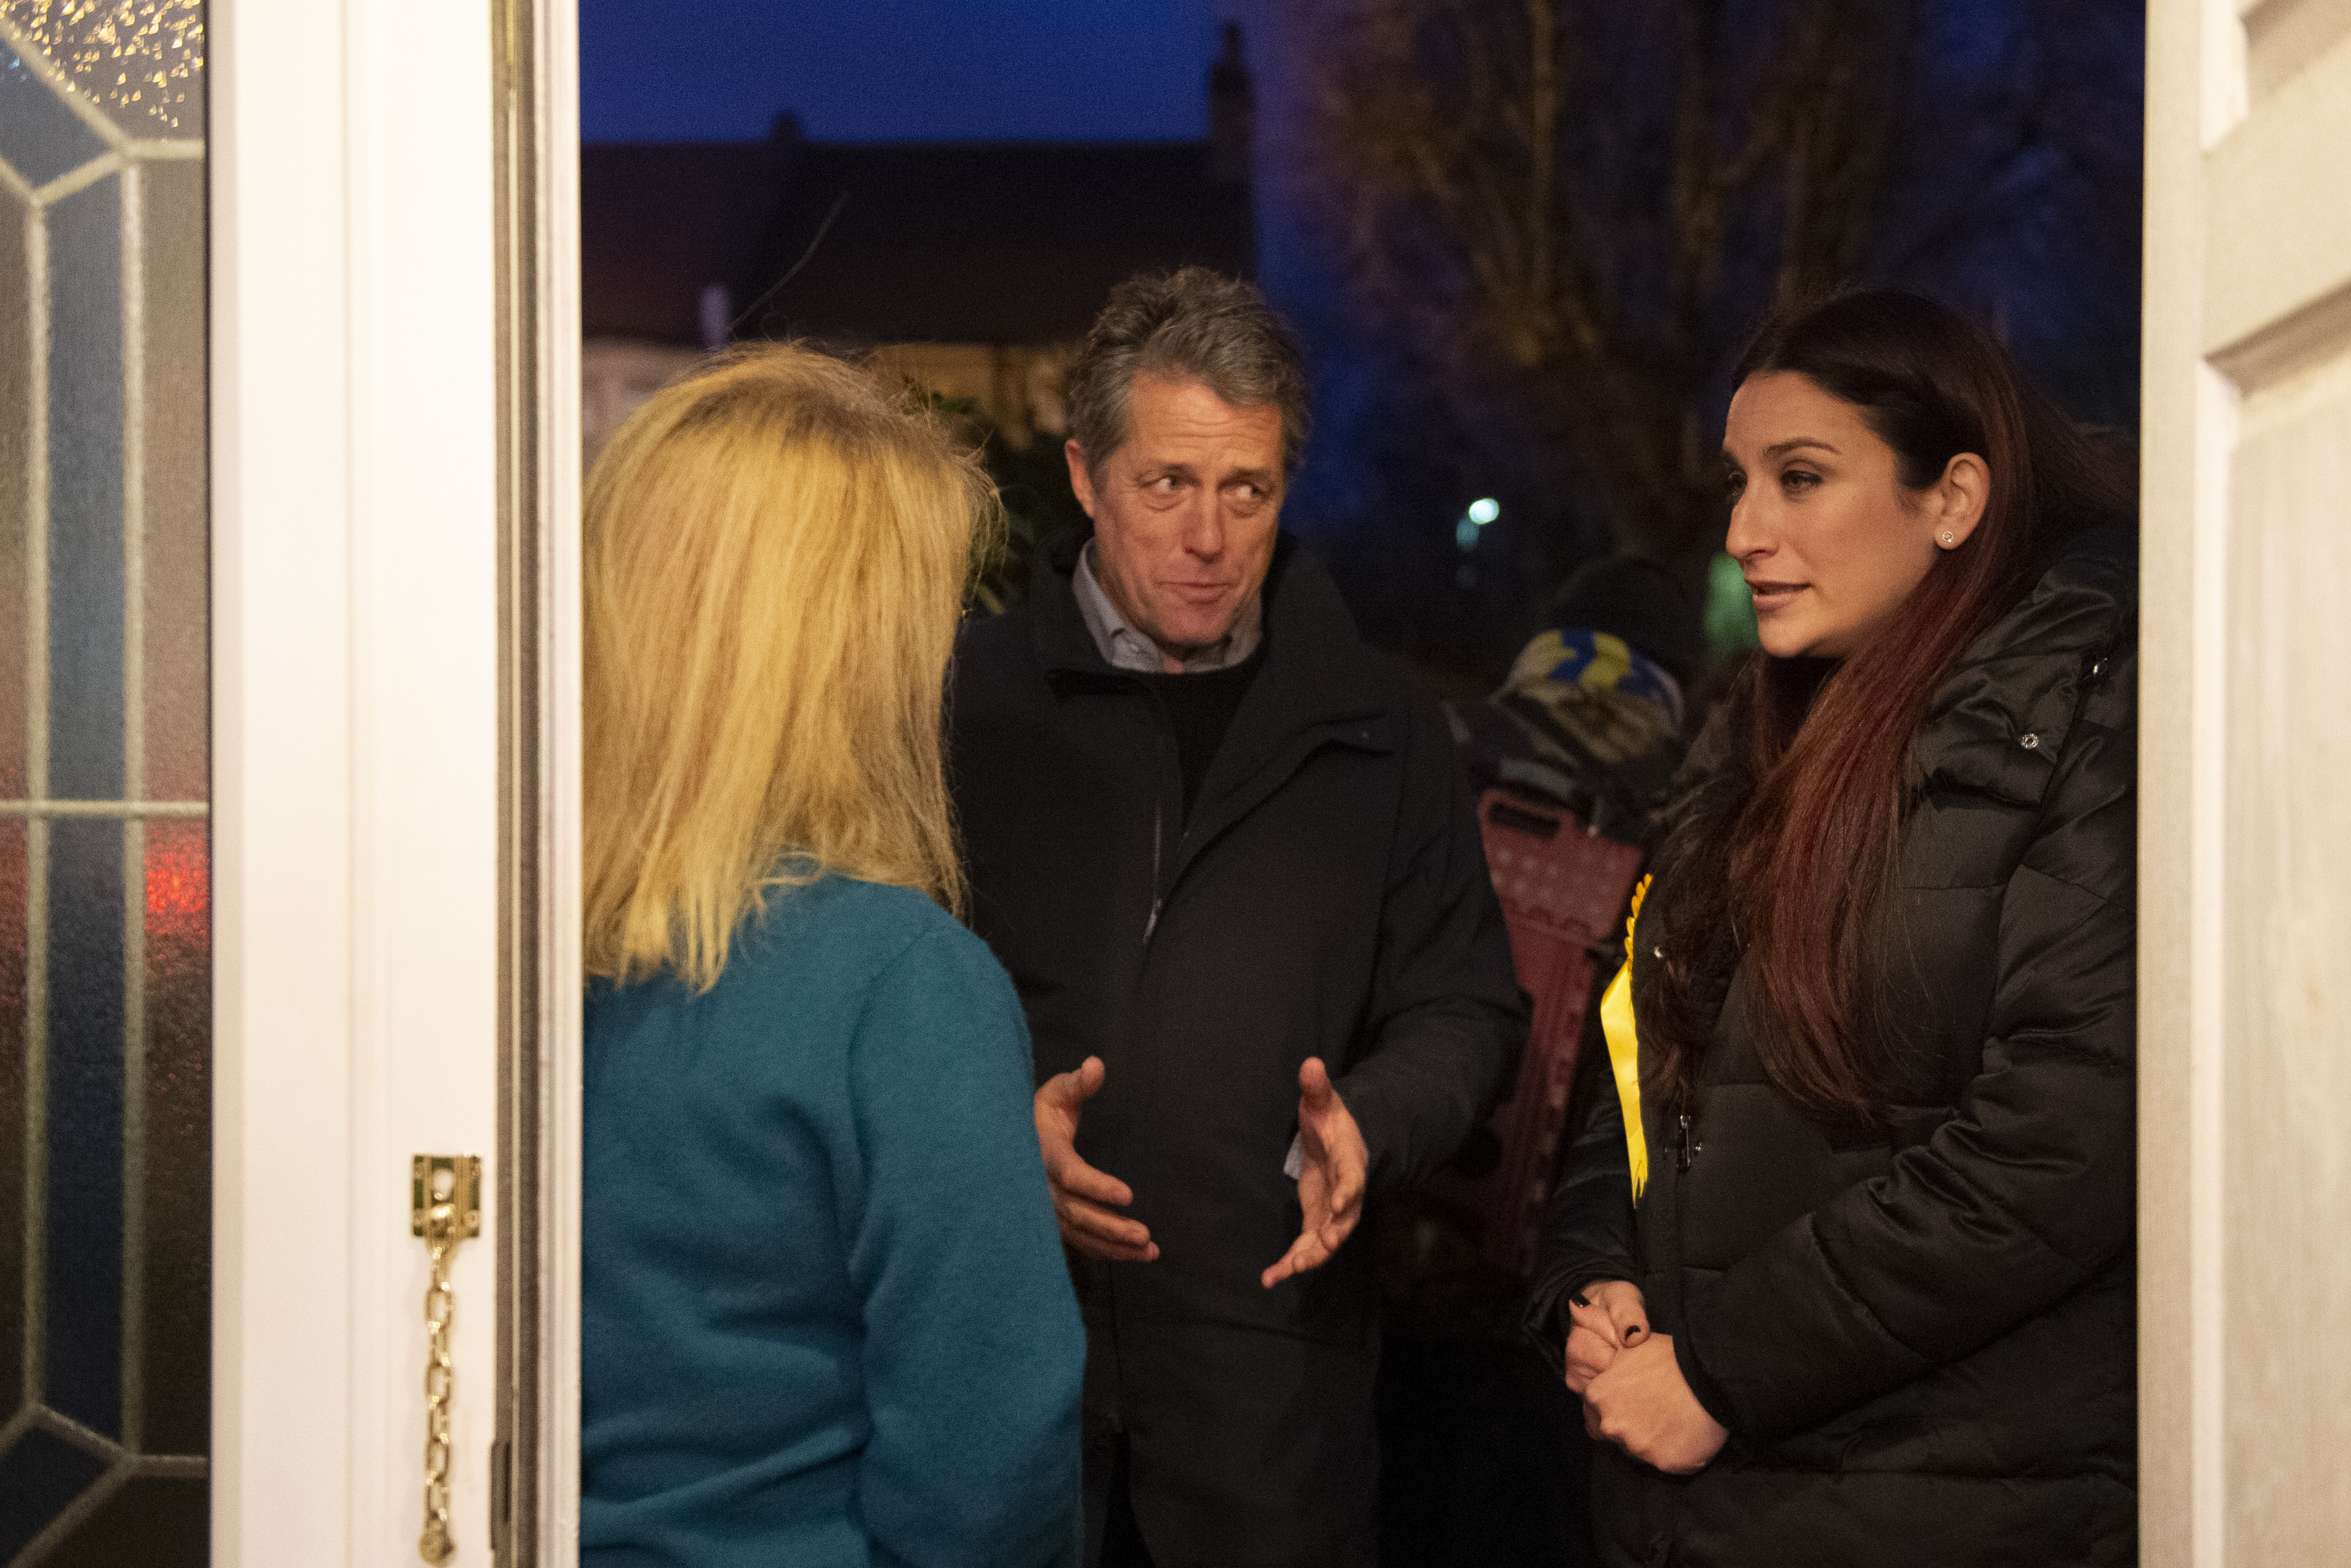 (right) Liberal Democrat's candidate for Finchley and Golders Green, Luciana Berger and Hugh Grant canvassing in Finchley while on the General Election campaign trail.